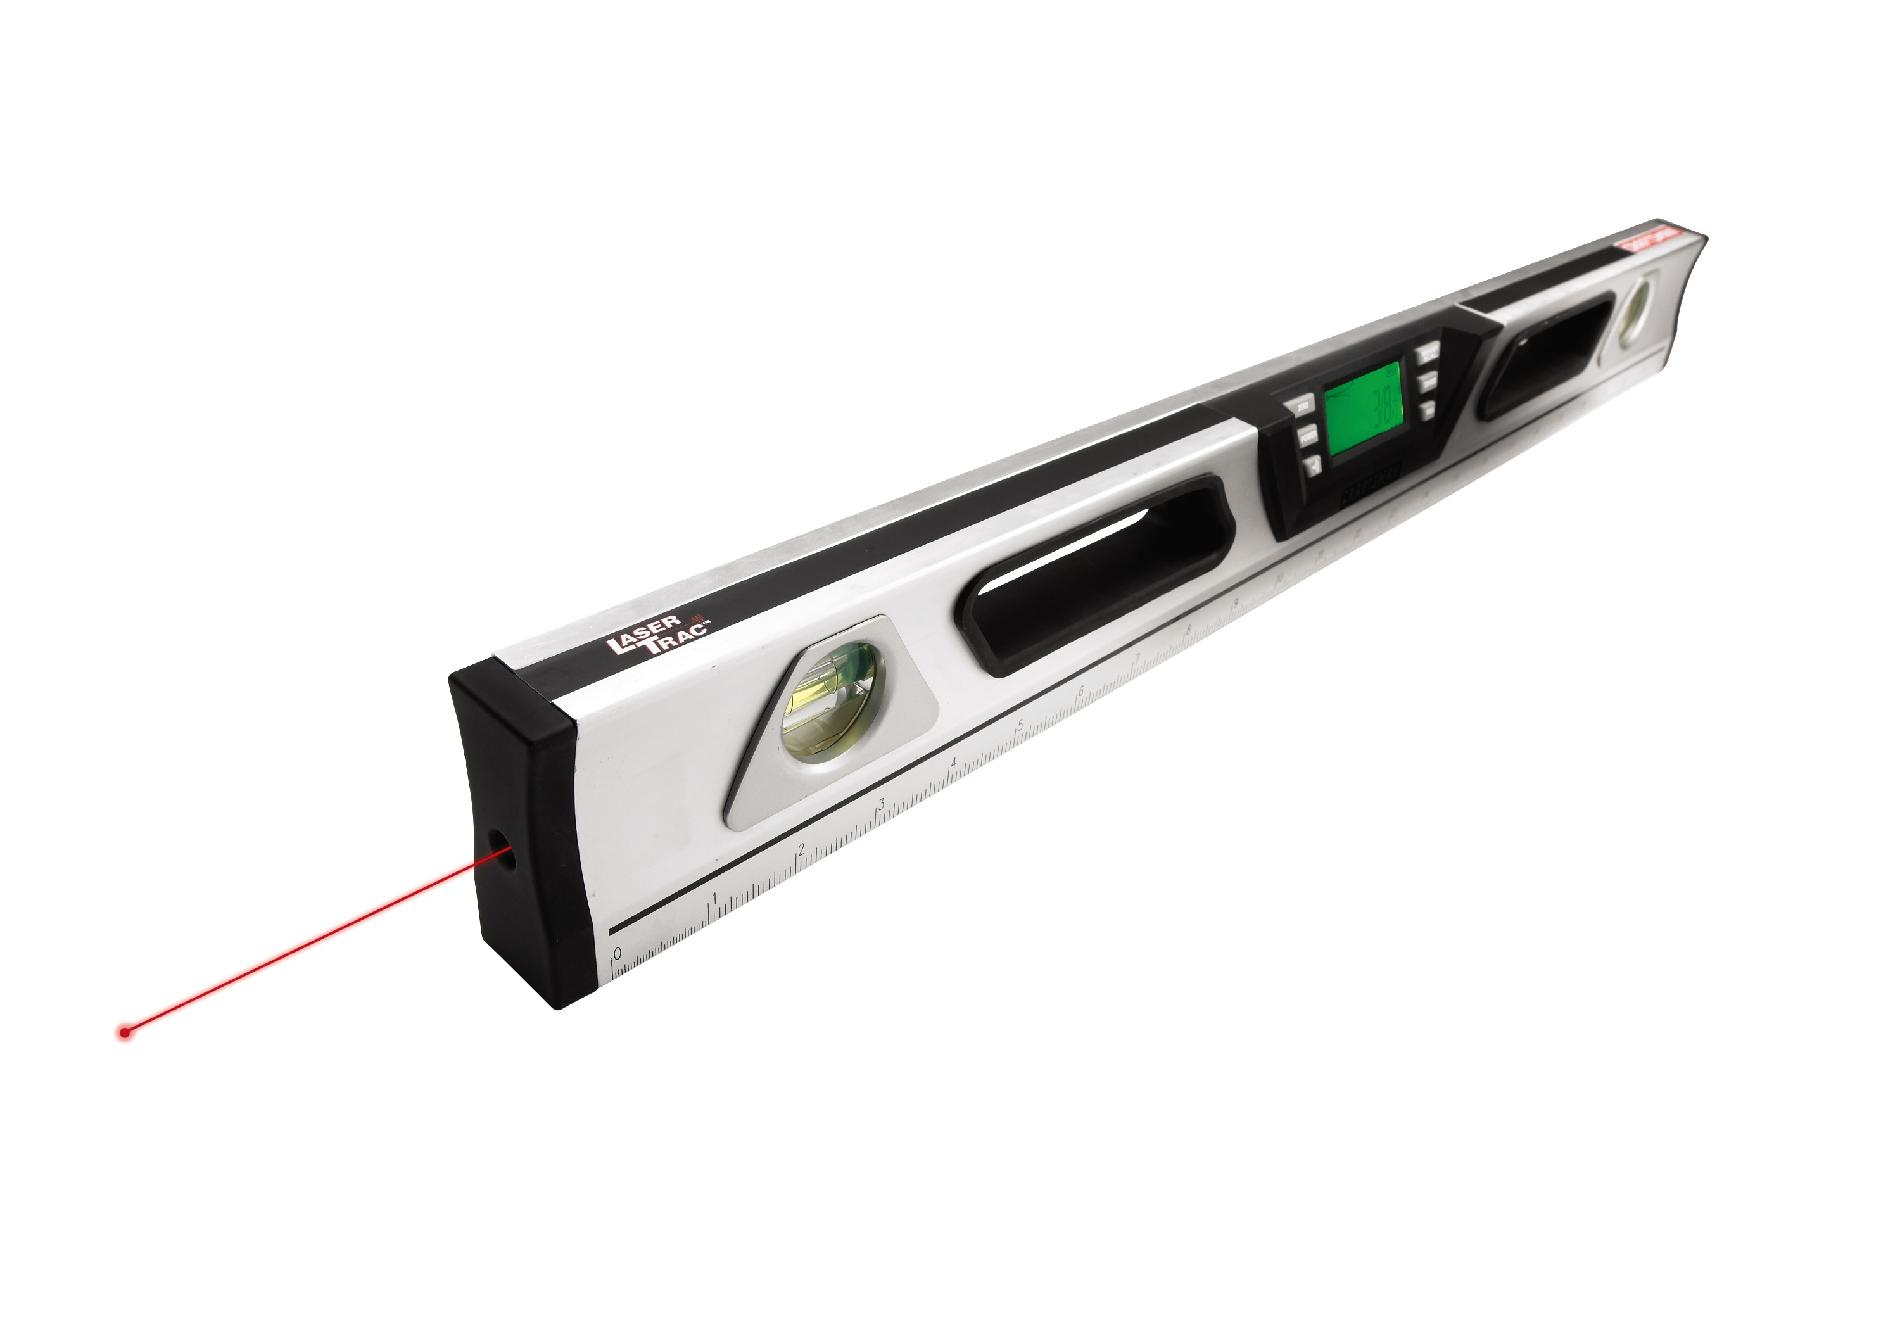 Craftsman 24 in. Digital LaserTrac® Level